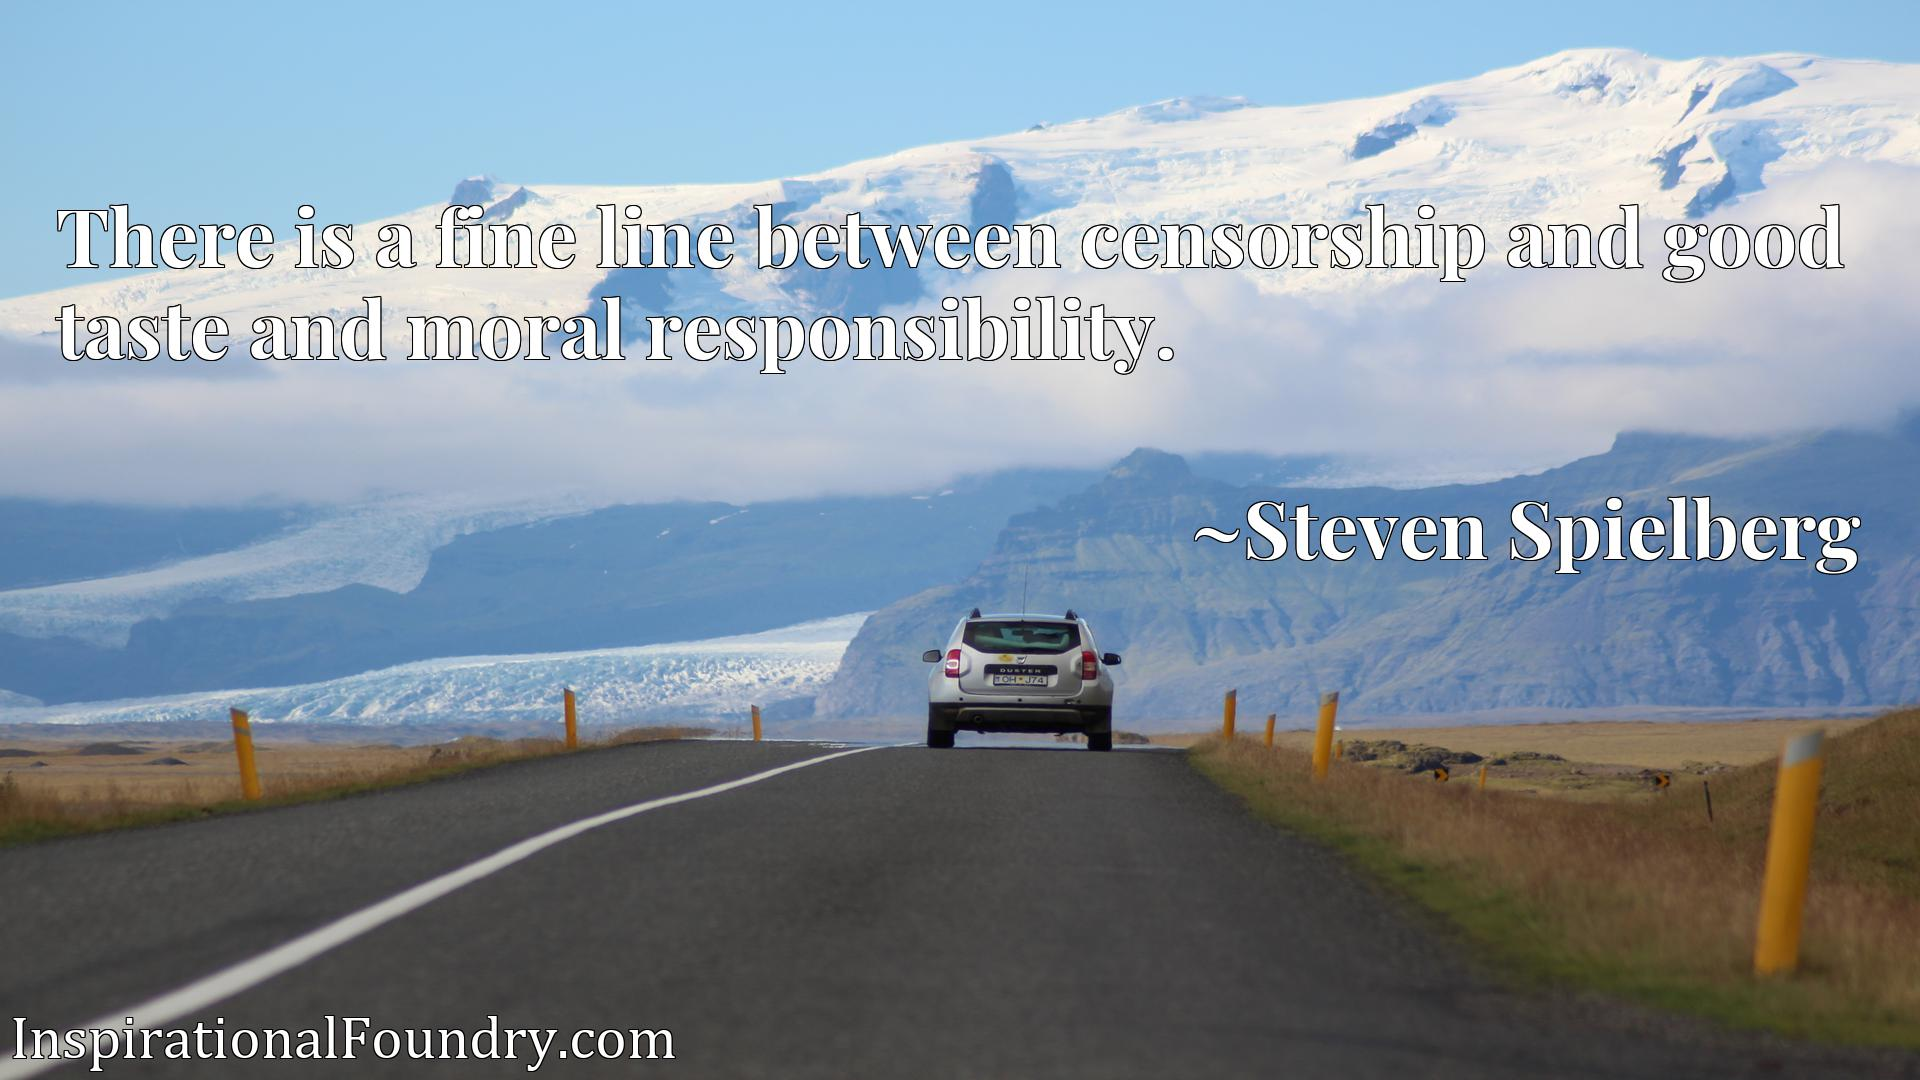 Quote Picture :There is a fine line between censorship and good taste and moral responsibility.